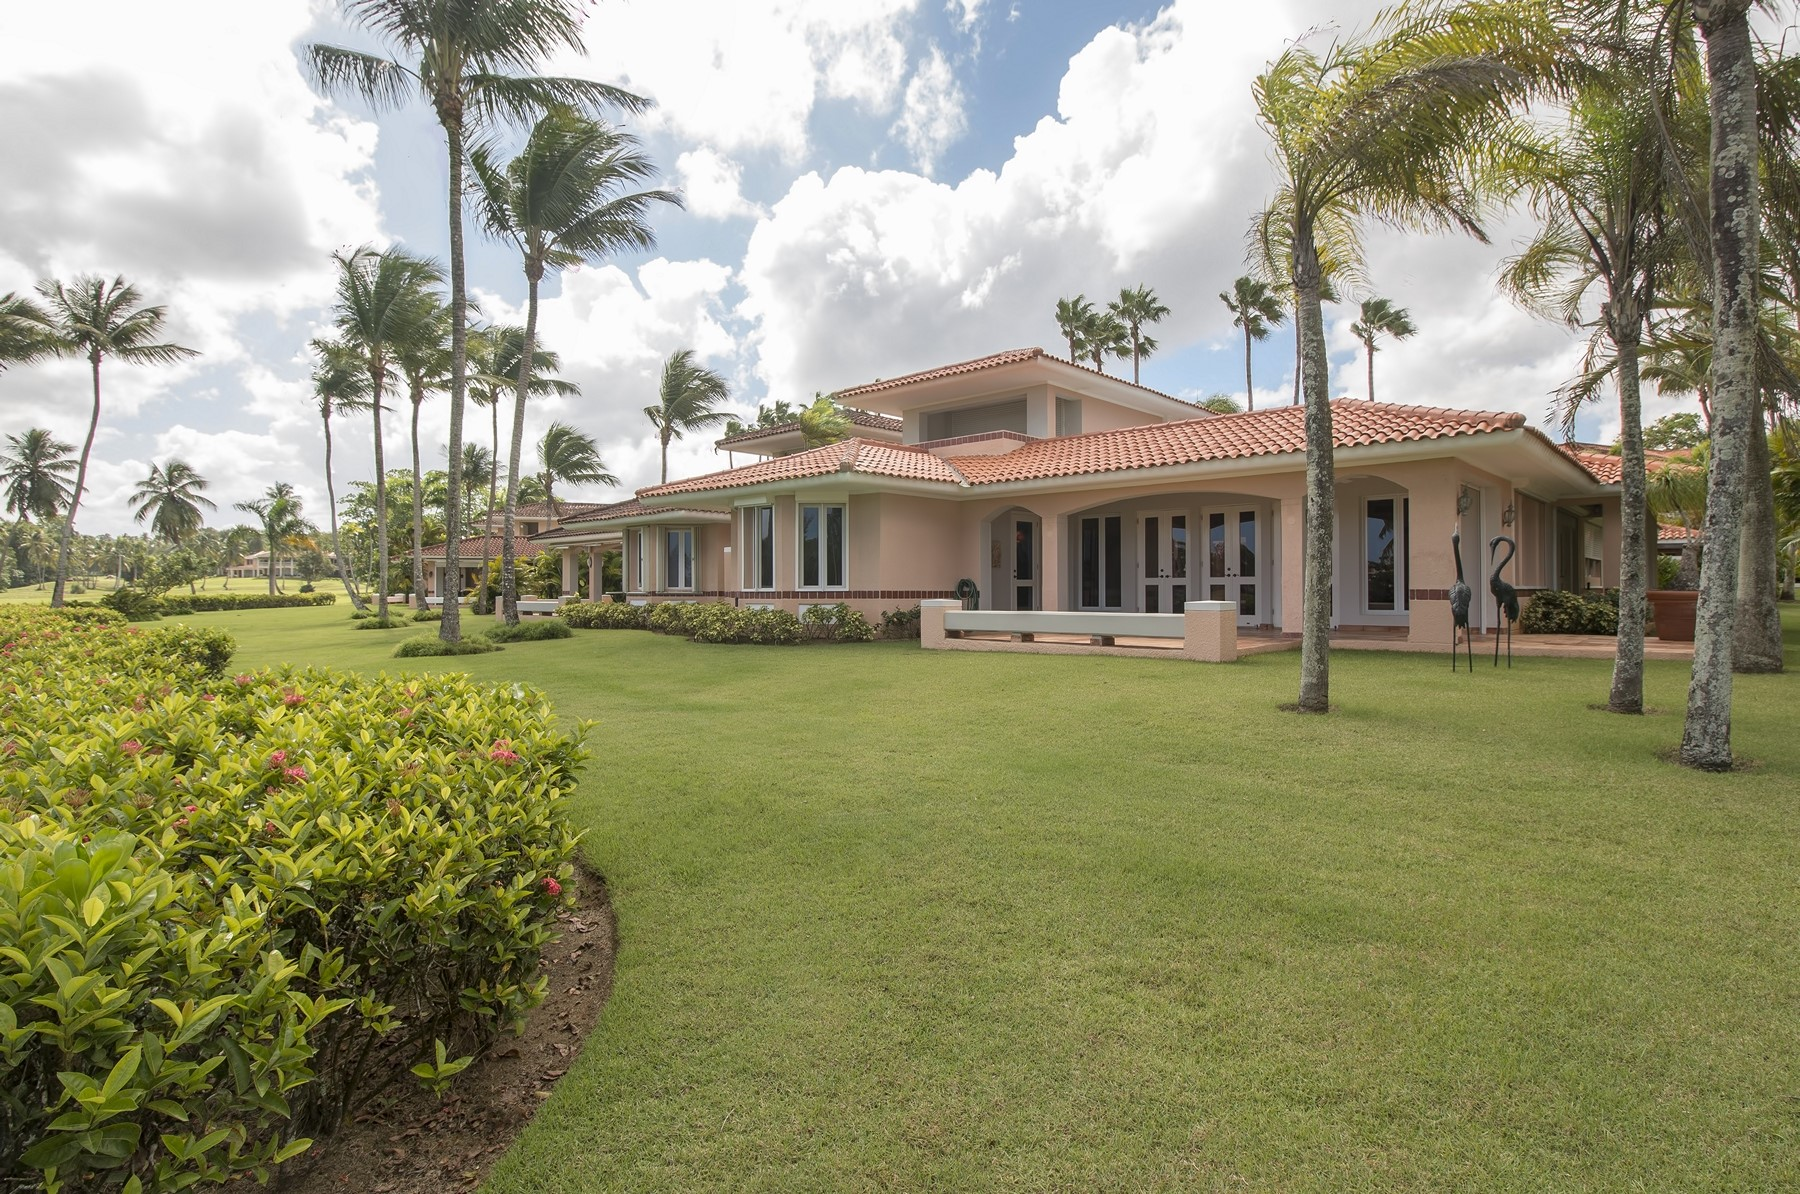 Single Family Home for Sale at Mediterranean Villa at The Greens 3 Green Villas Drive Dorado Beach, 00646 Puerto Rico